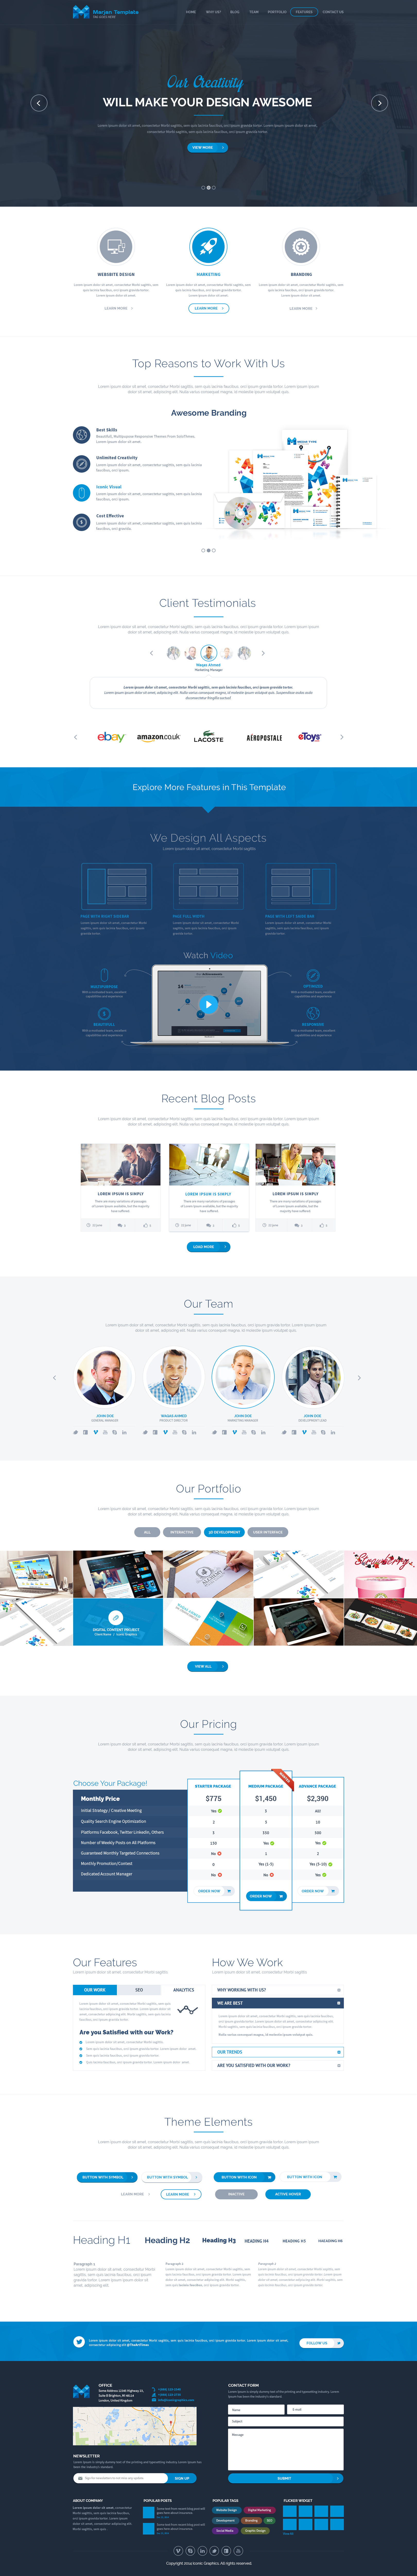 Marjan One Page PSD Template by themerboy